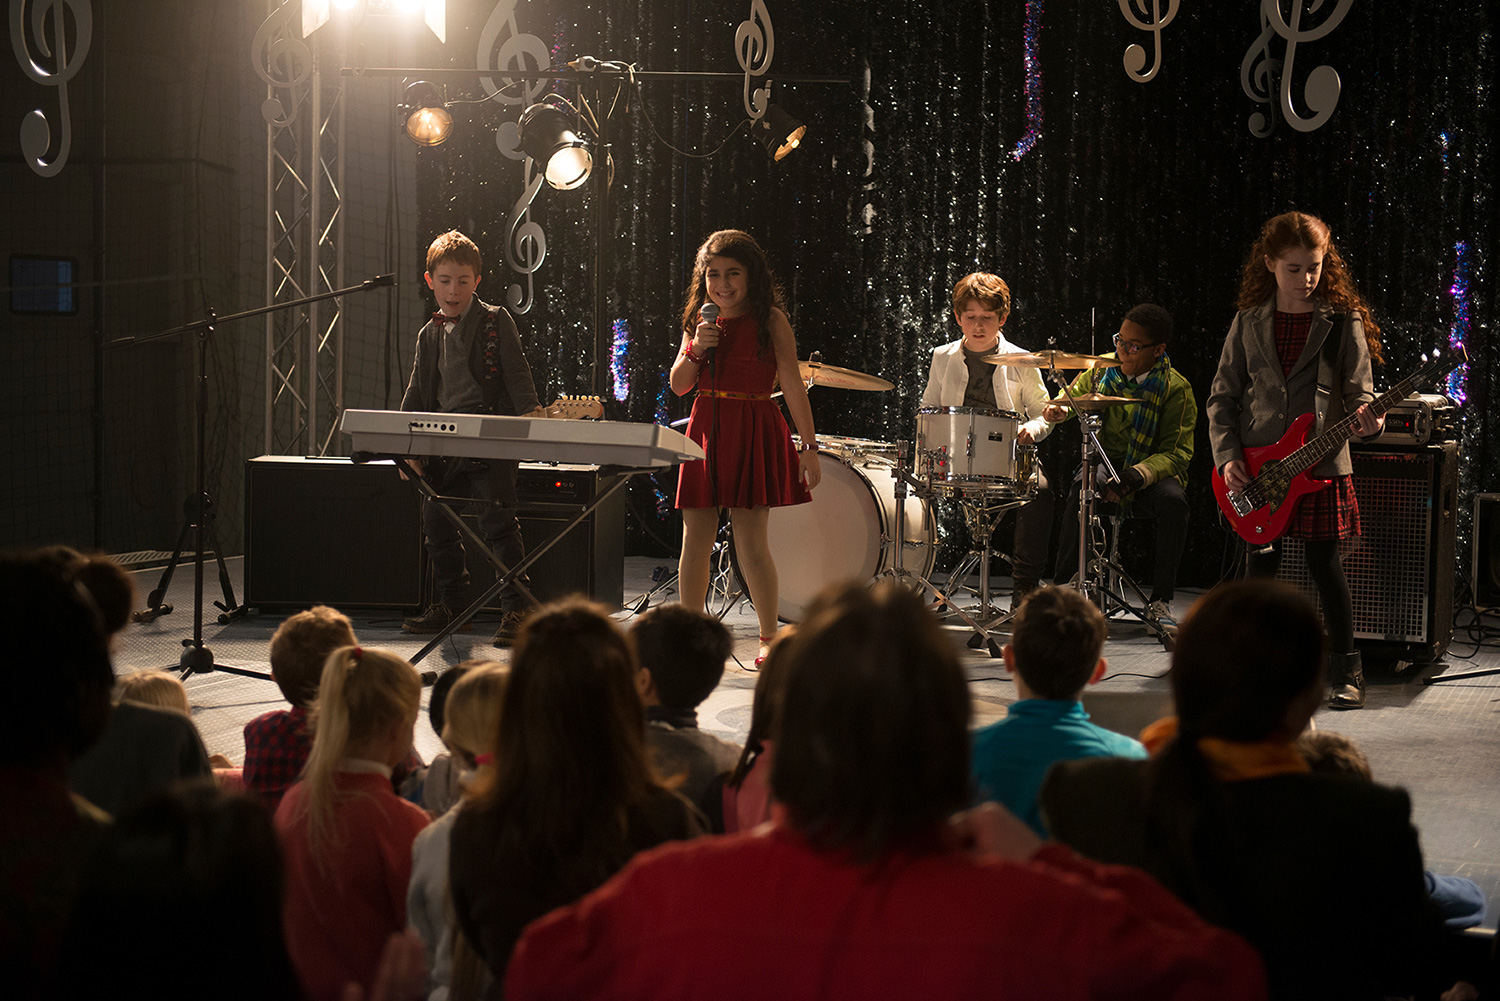 The Misfits steal the show at the battle of the bands